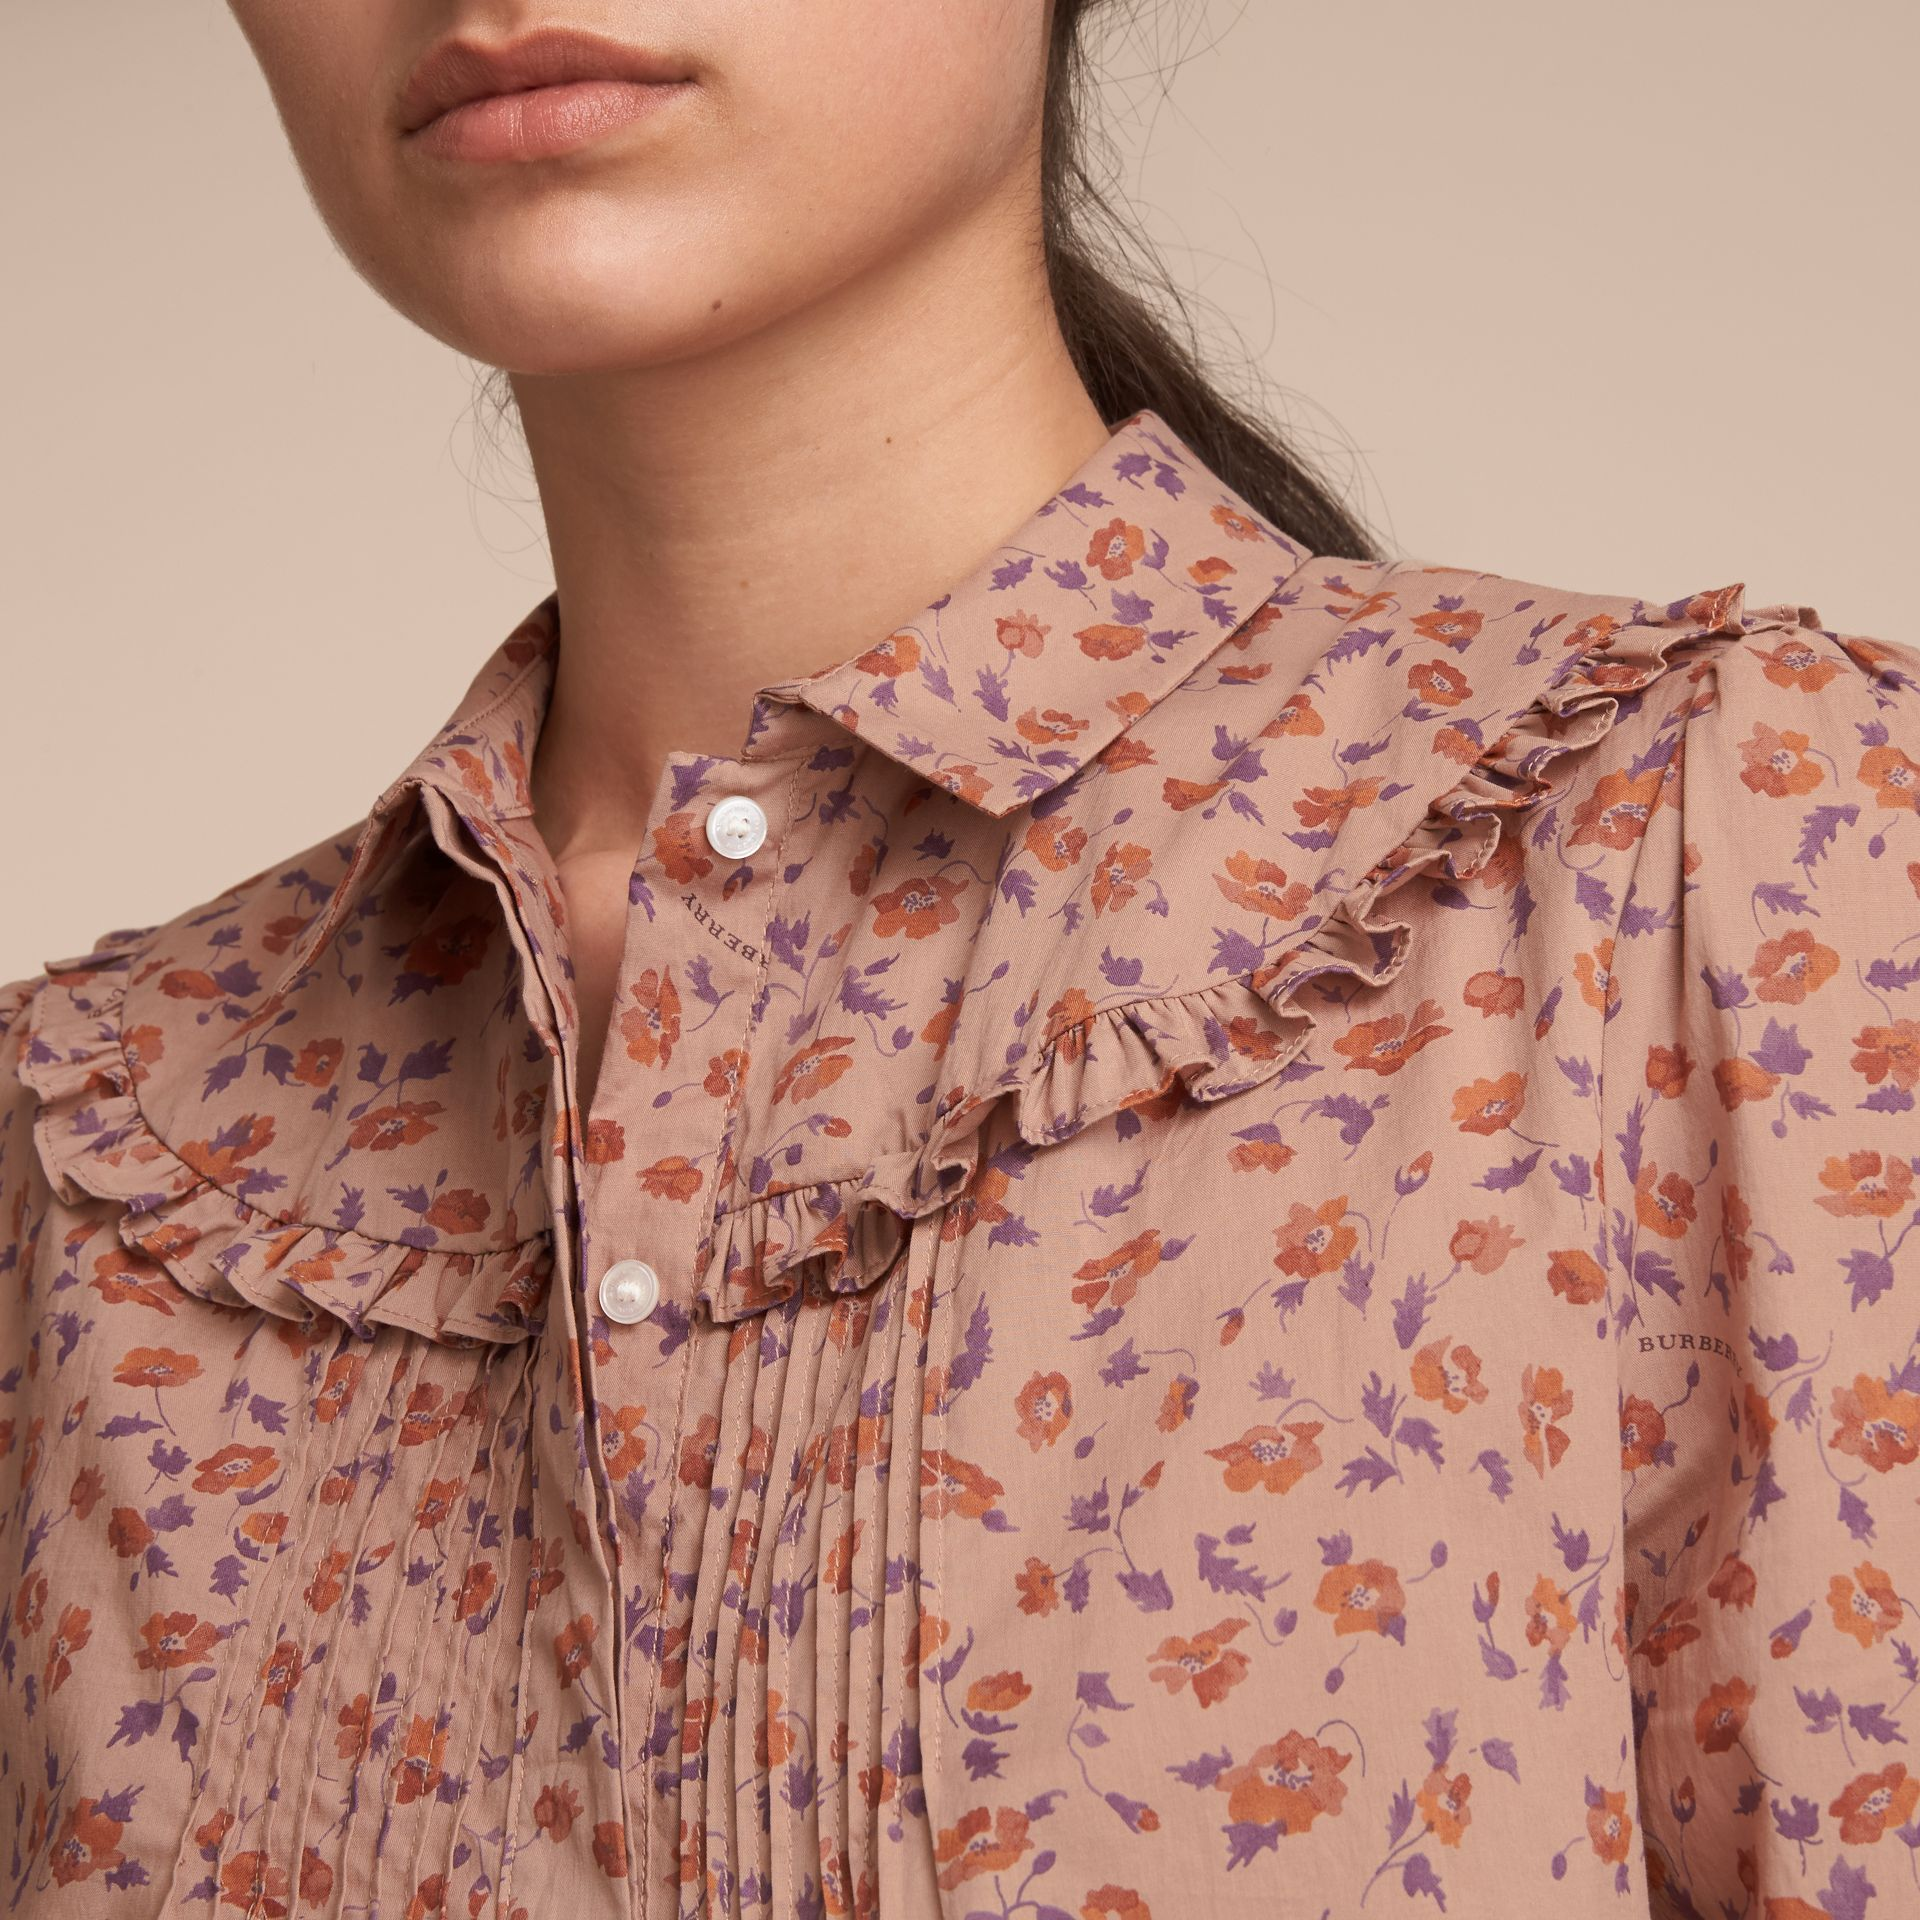 Ruffle Yoke Floral Print Cotton Shirt in Light Copper - Women | Burberry - gallery image 4